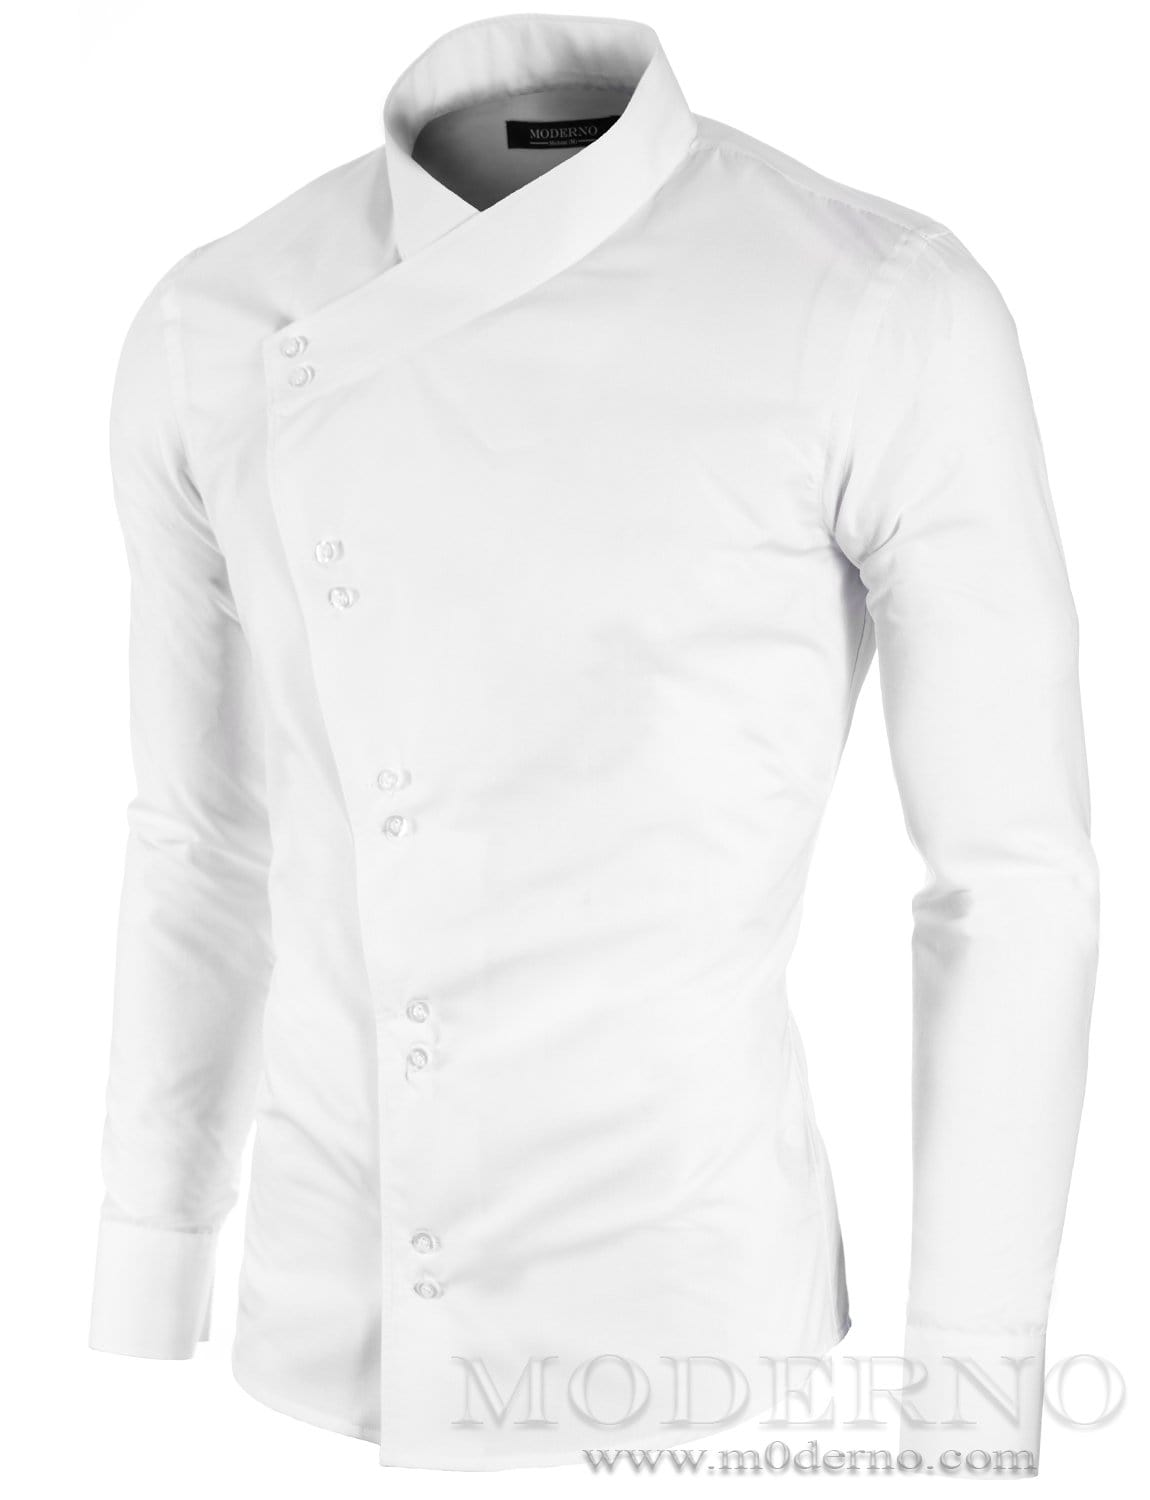 Mens button-down shirt white (MOD1430LS) - MODERNO